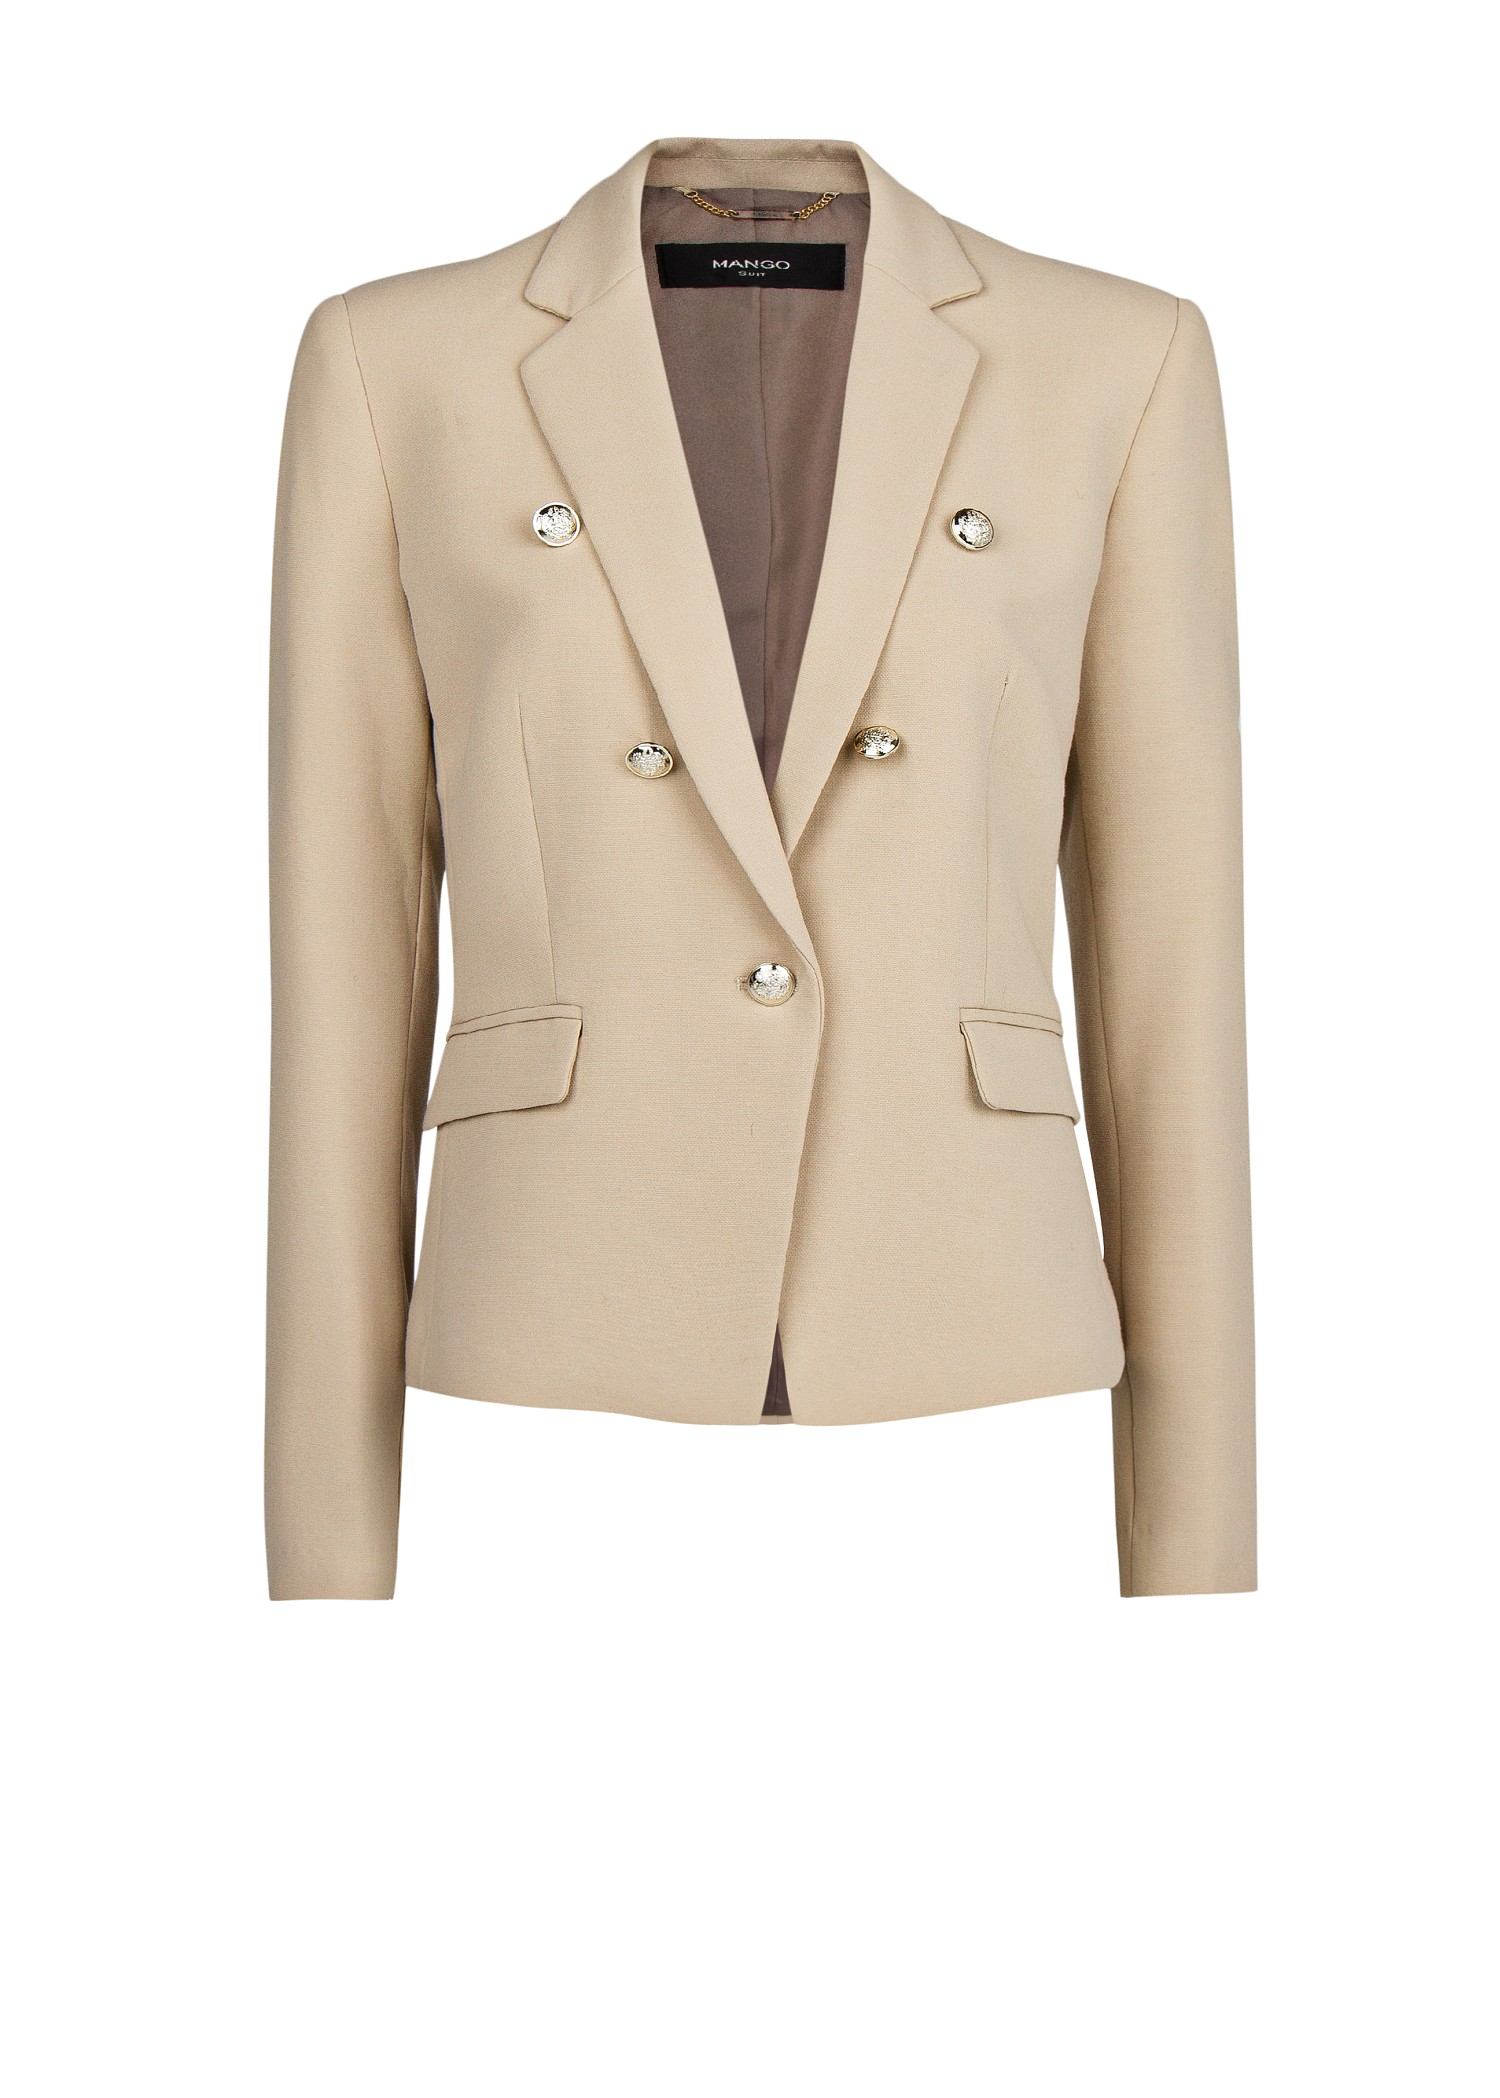 Mango Emblem Button Blazer in Natural | Lyst